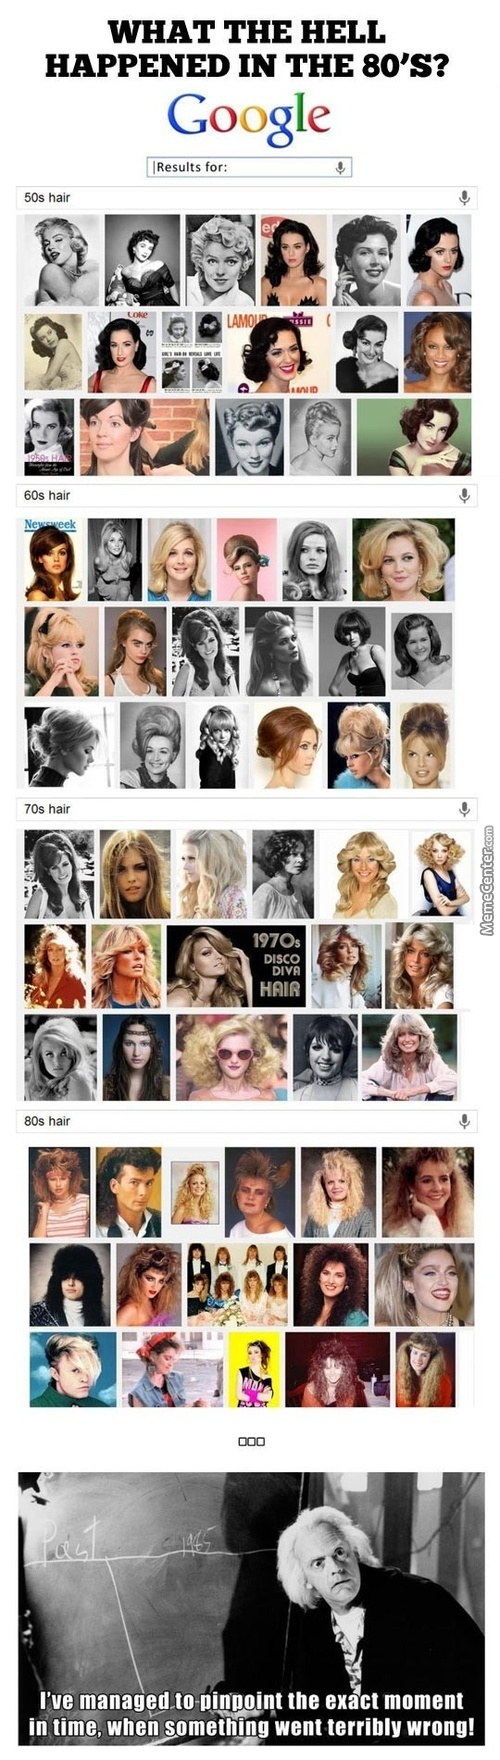 Hair Styles Through The Decades